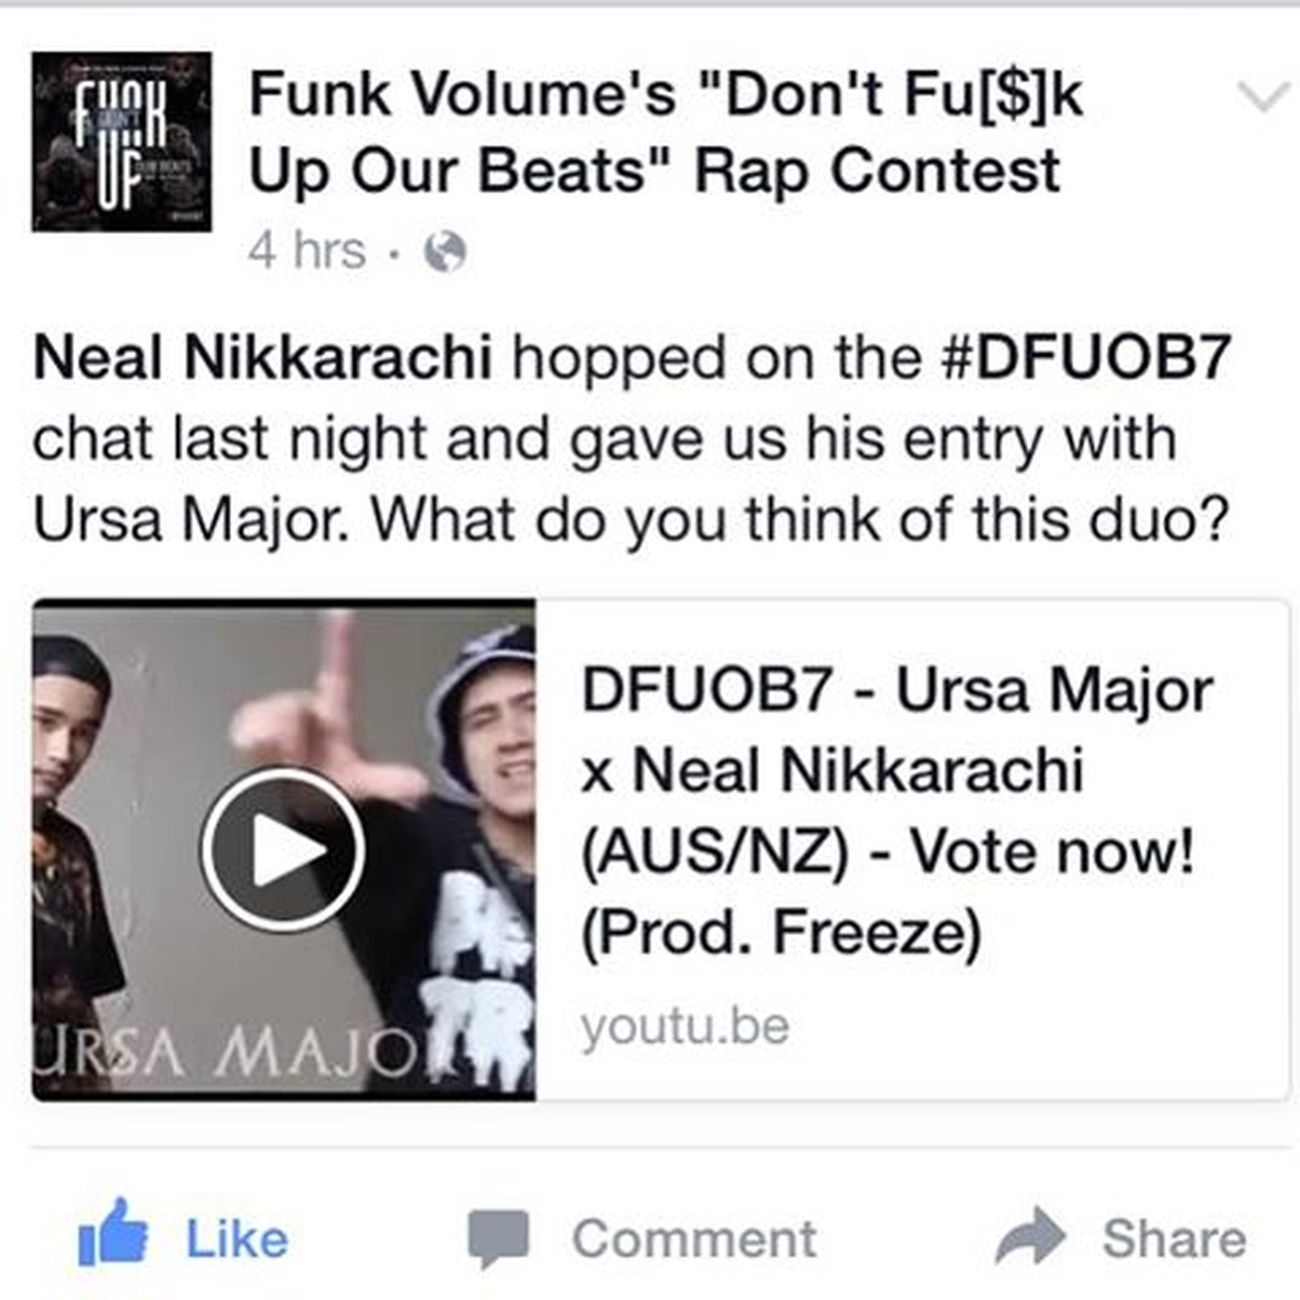 Myself & Ursa Major got out entry posted on the Don't Funk Up Our Beats page! Jarrem Benton told us he liked it! Funkvolume Dfuob7 Jarrembenton Jarren Benton Funk Volume Ursamajor Nikkarachi Voteforus DOPE Destiny Music Rap HipHop